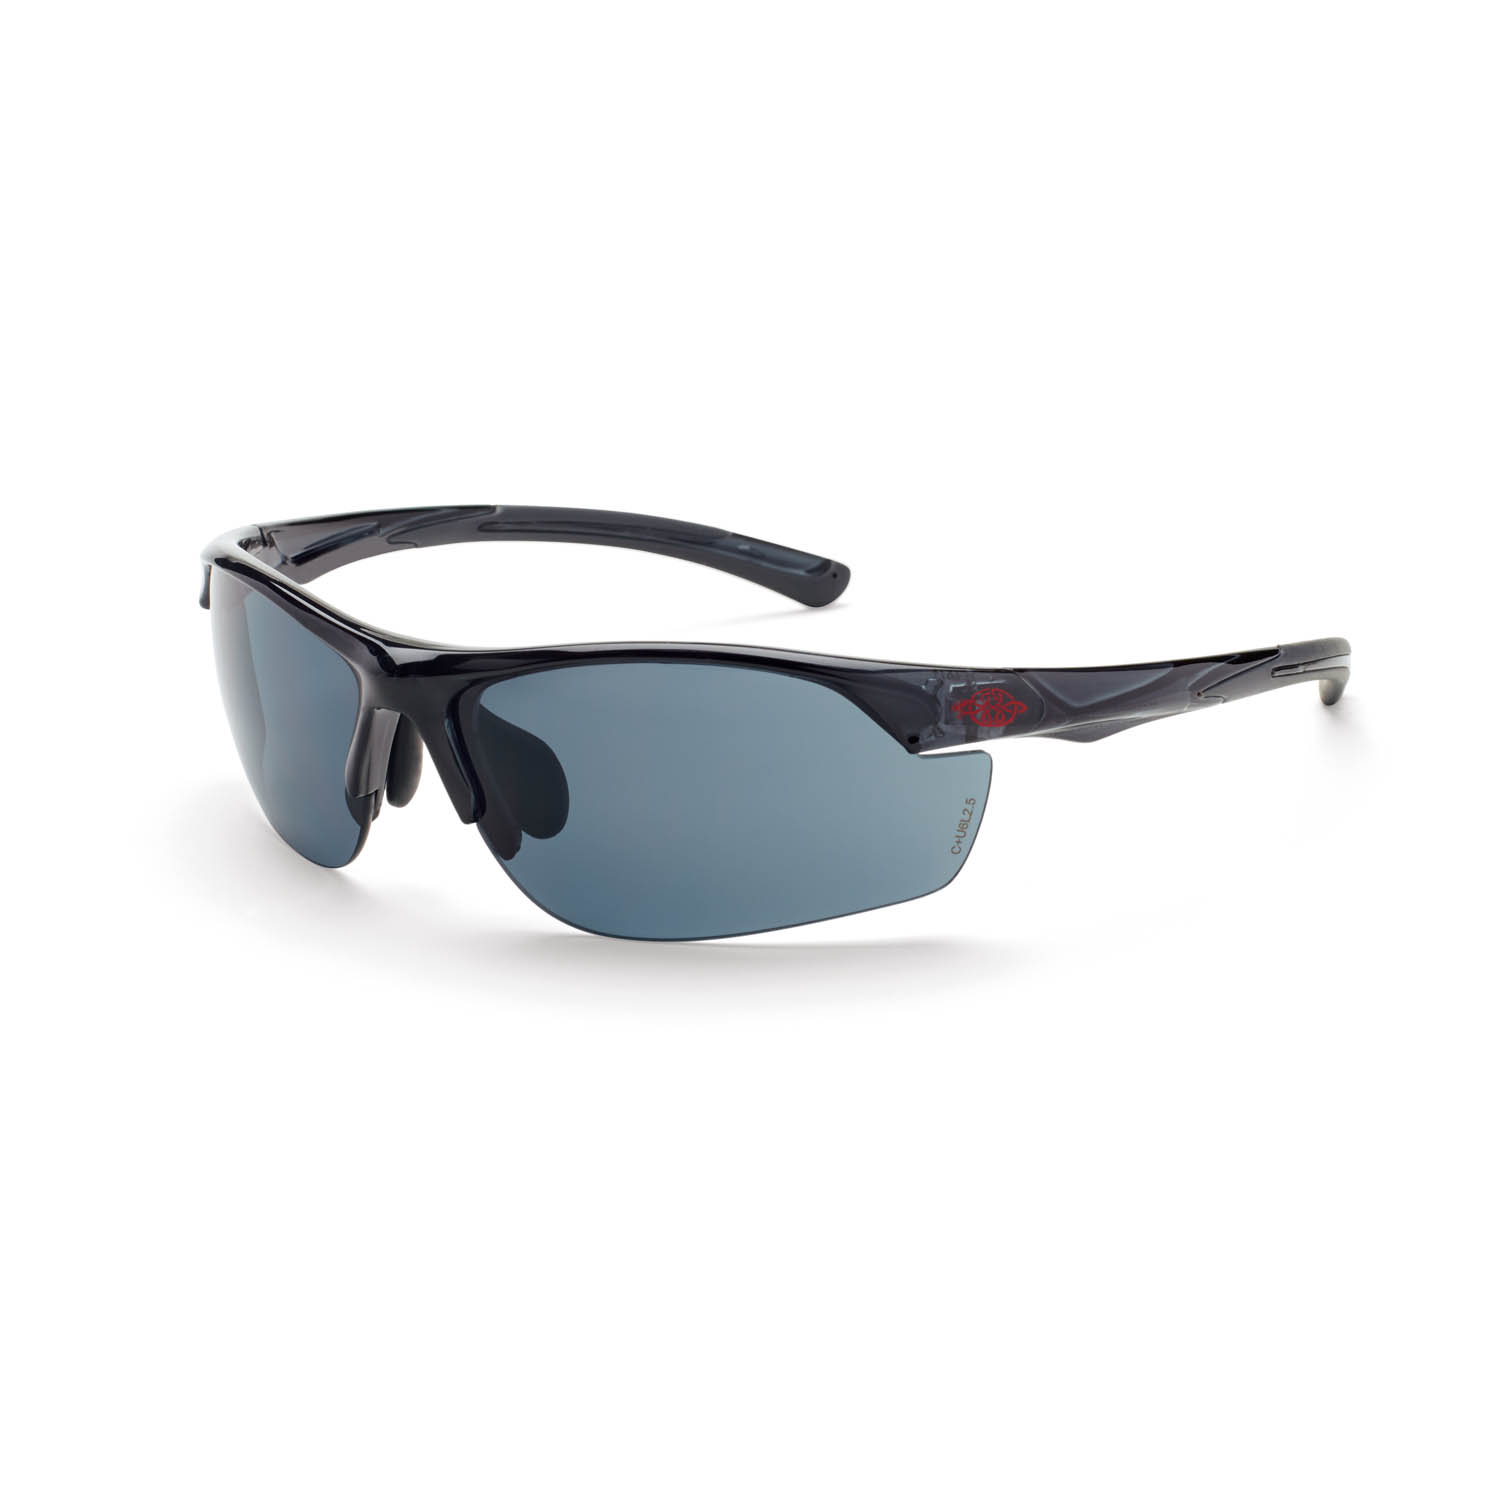 Crossfire AR3 Premium Safety Eyewear